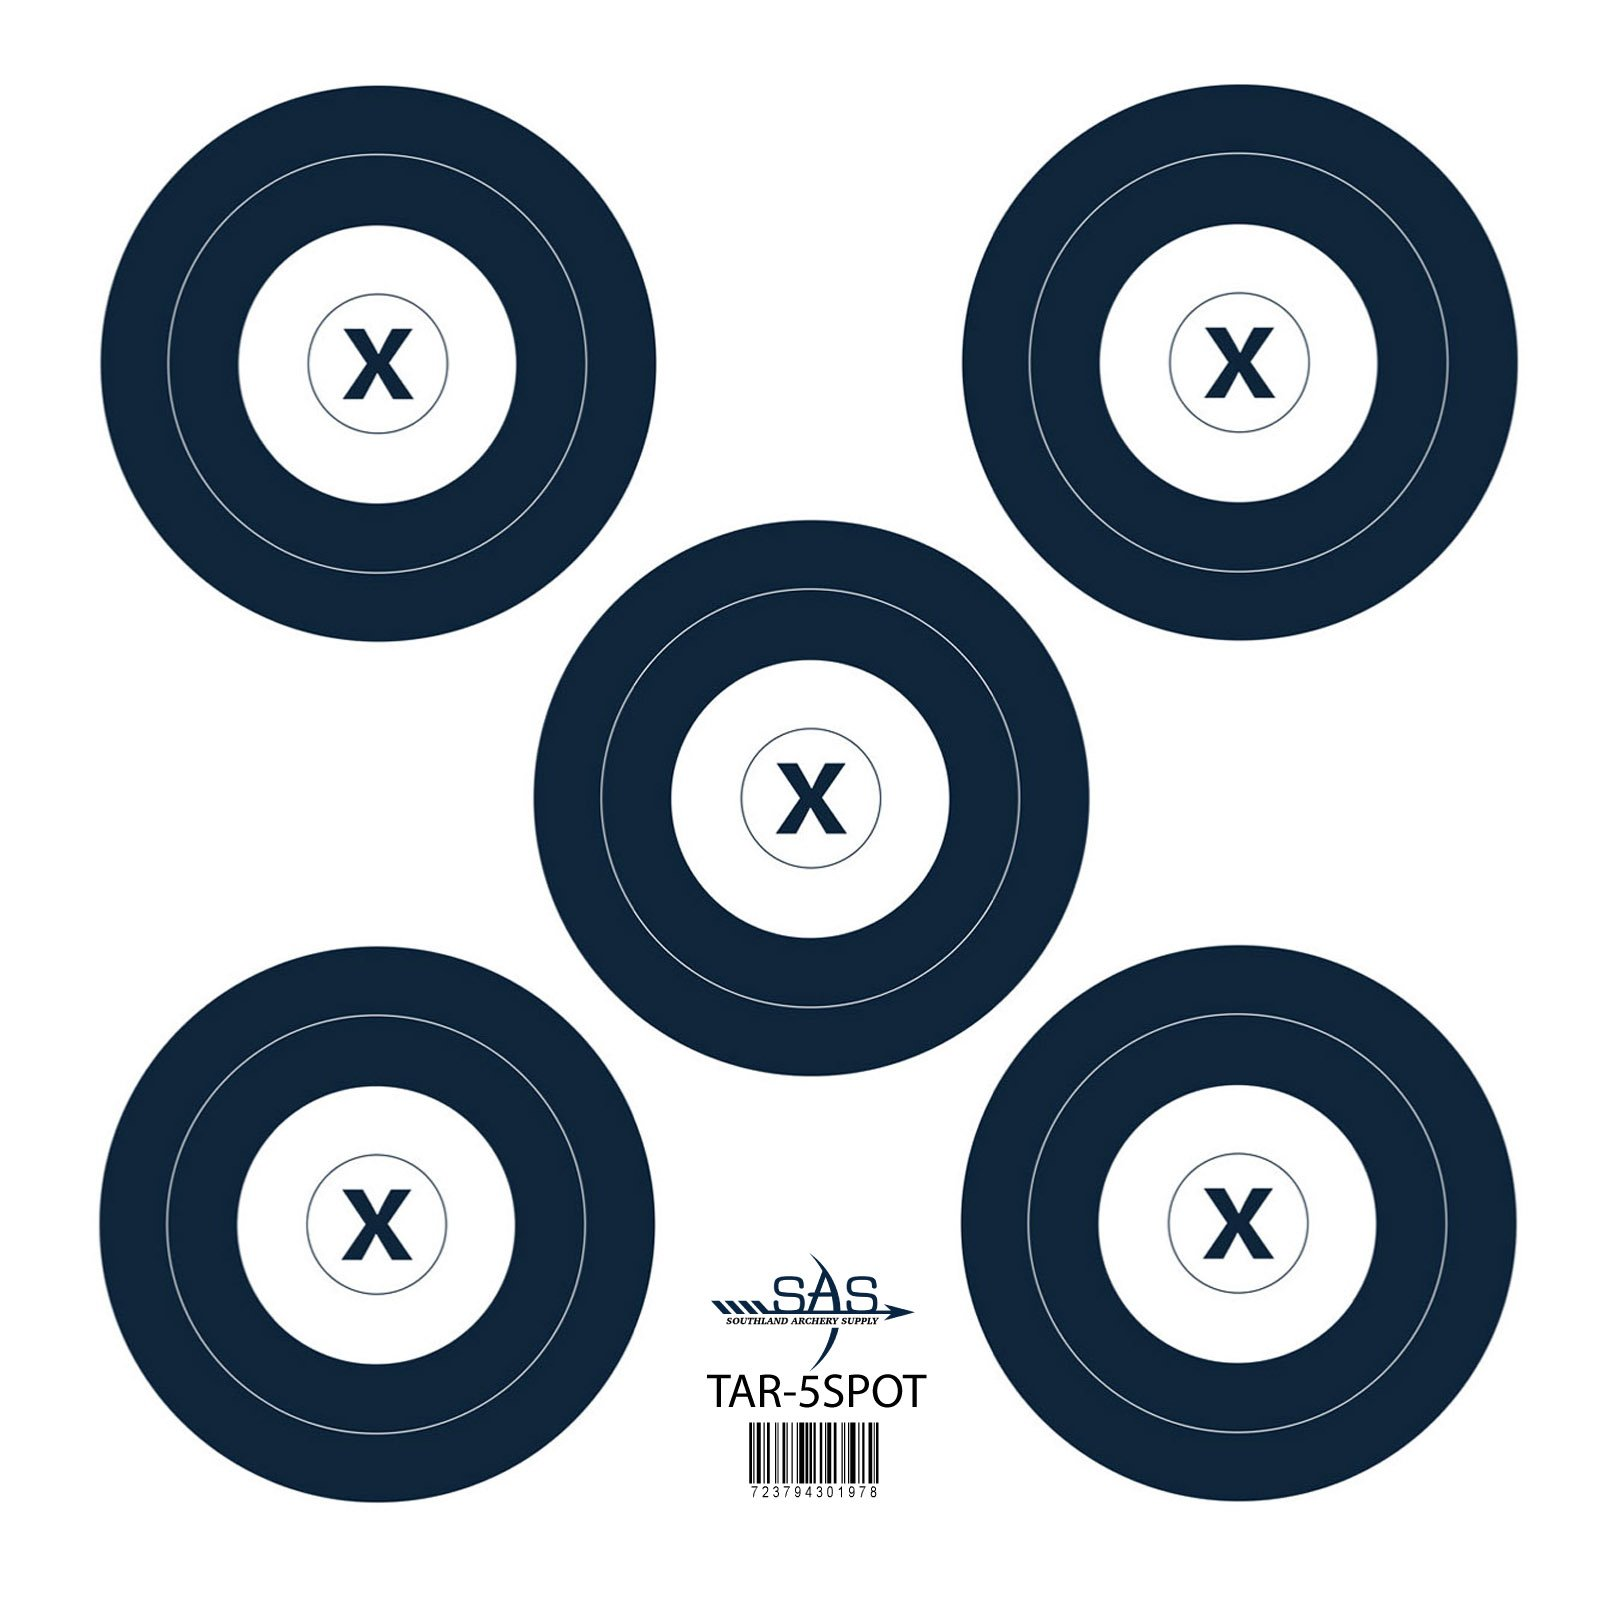 SAS 5-Spot Paper Target 18 in/45 cm (12) by Southland Archery Supply (Image #1)